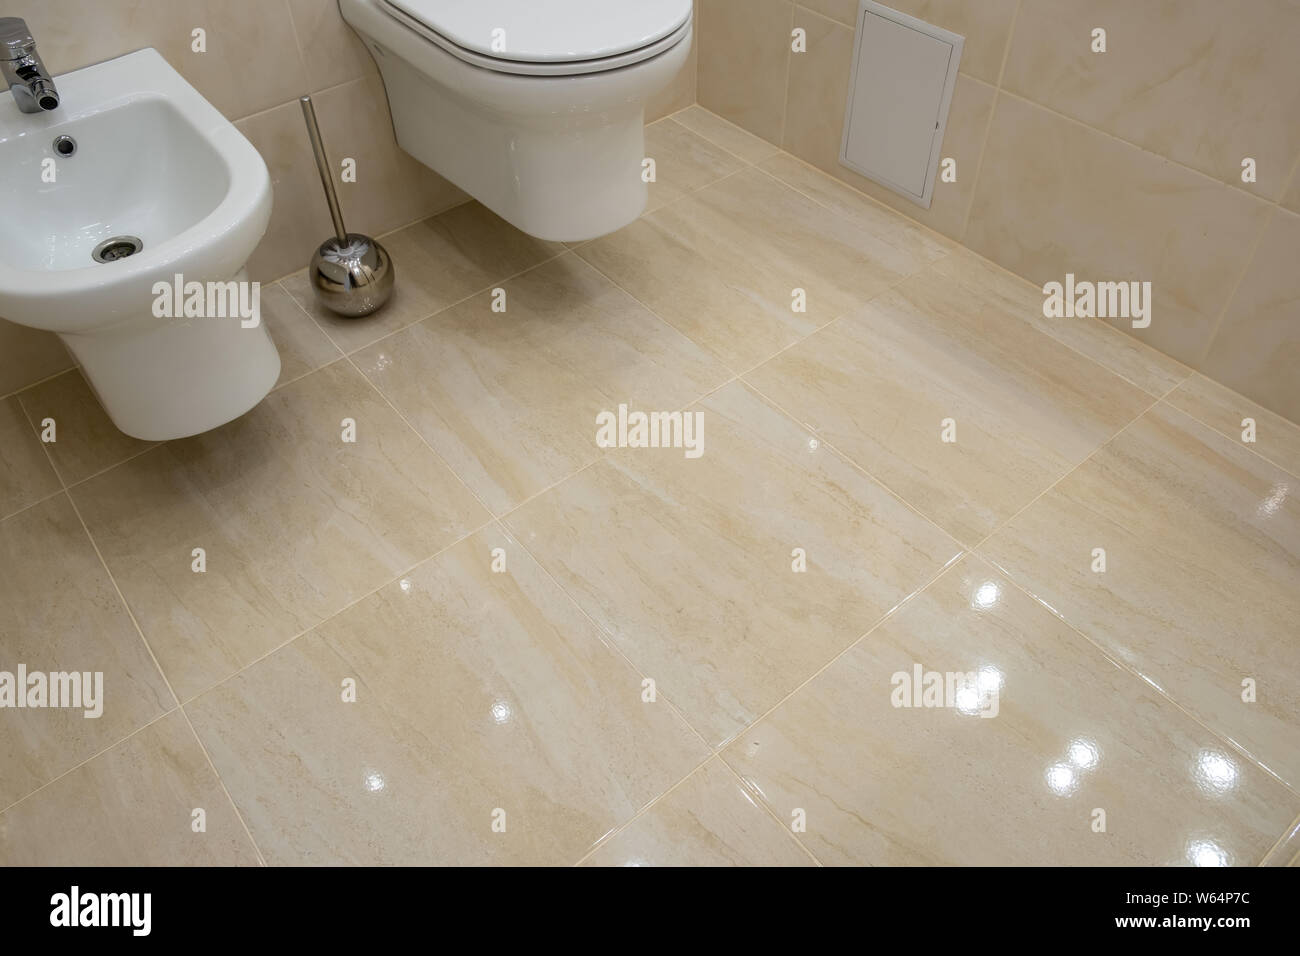 Brilliant Toilet And Bidet In A Modern Bathroom Raised Lid Light Caraccident5 Cool Chair Designs And Ideas Caraccident5Info